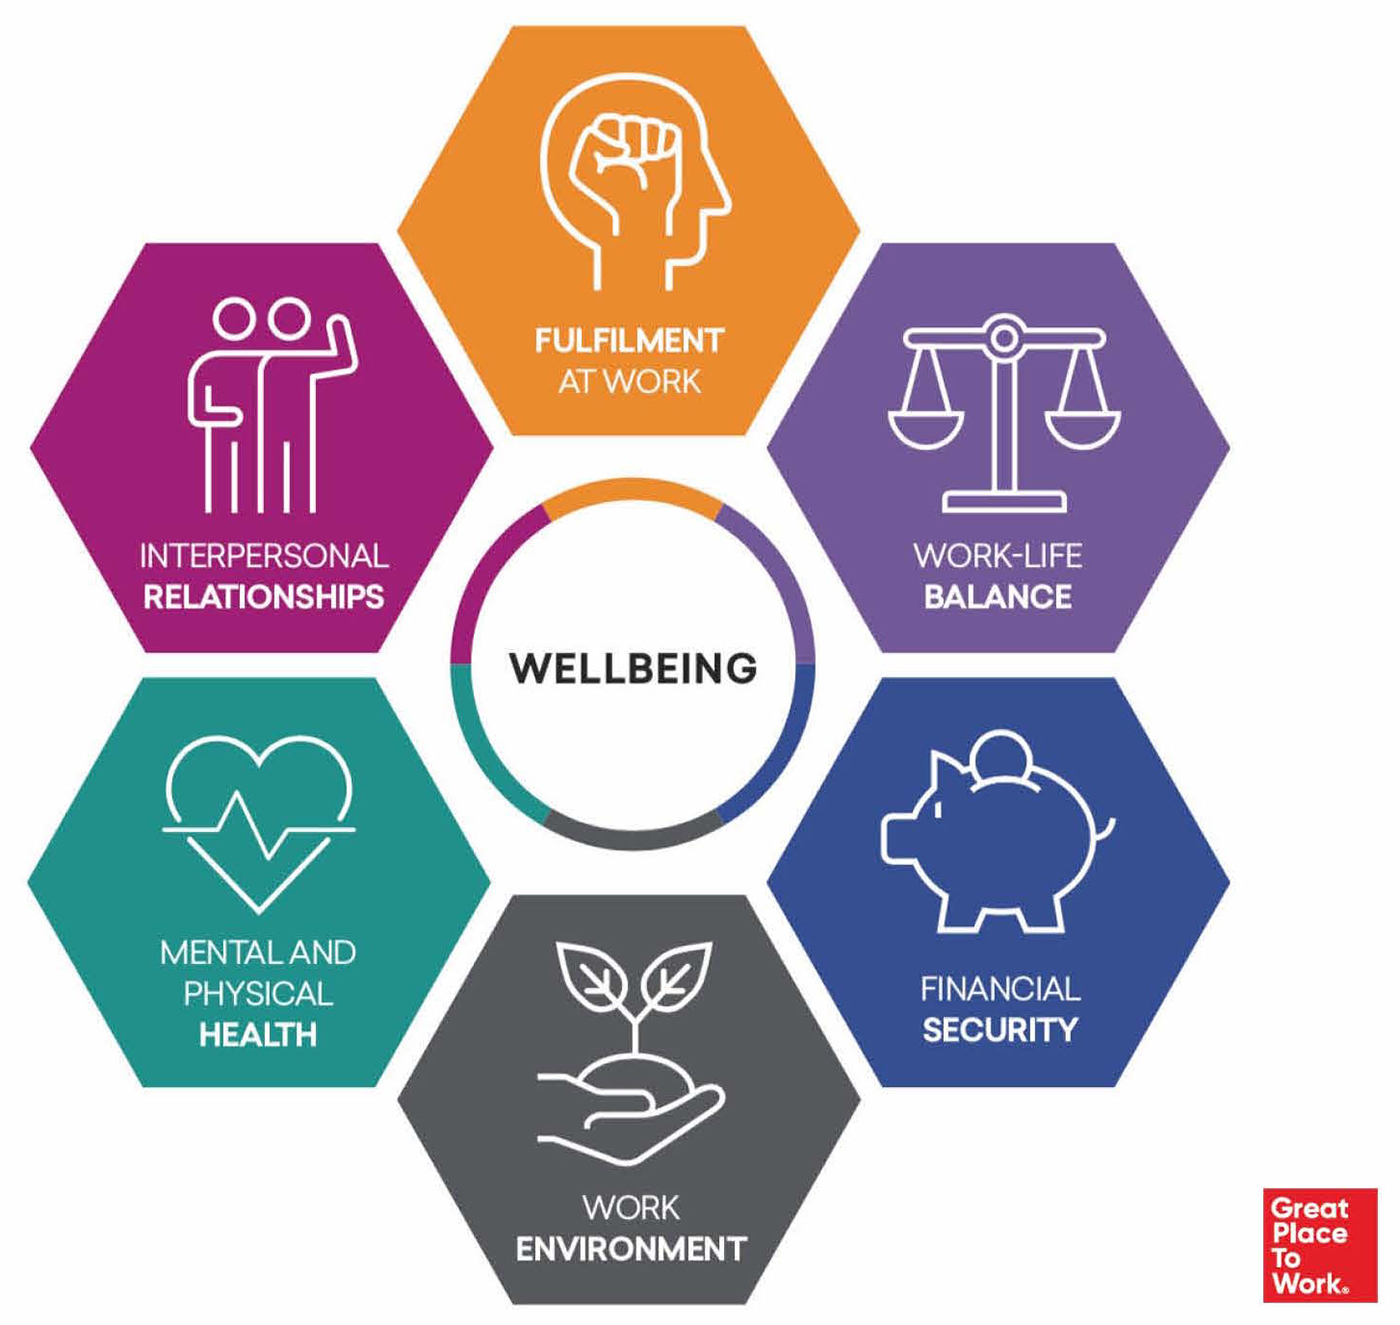 Il Wellbeing Model sviluppato dalla sede inglese di Great Place to Work®